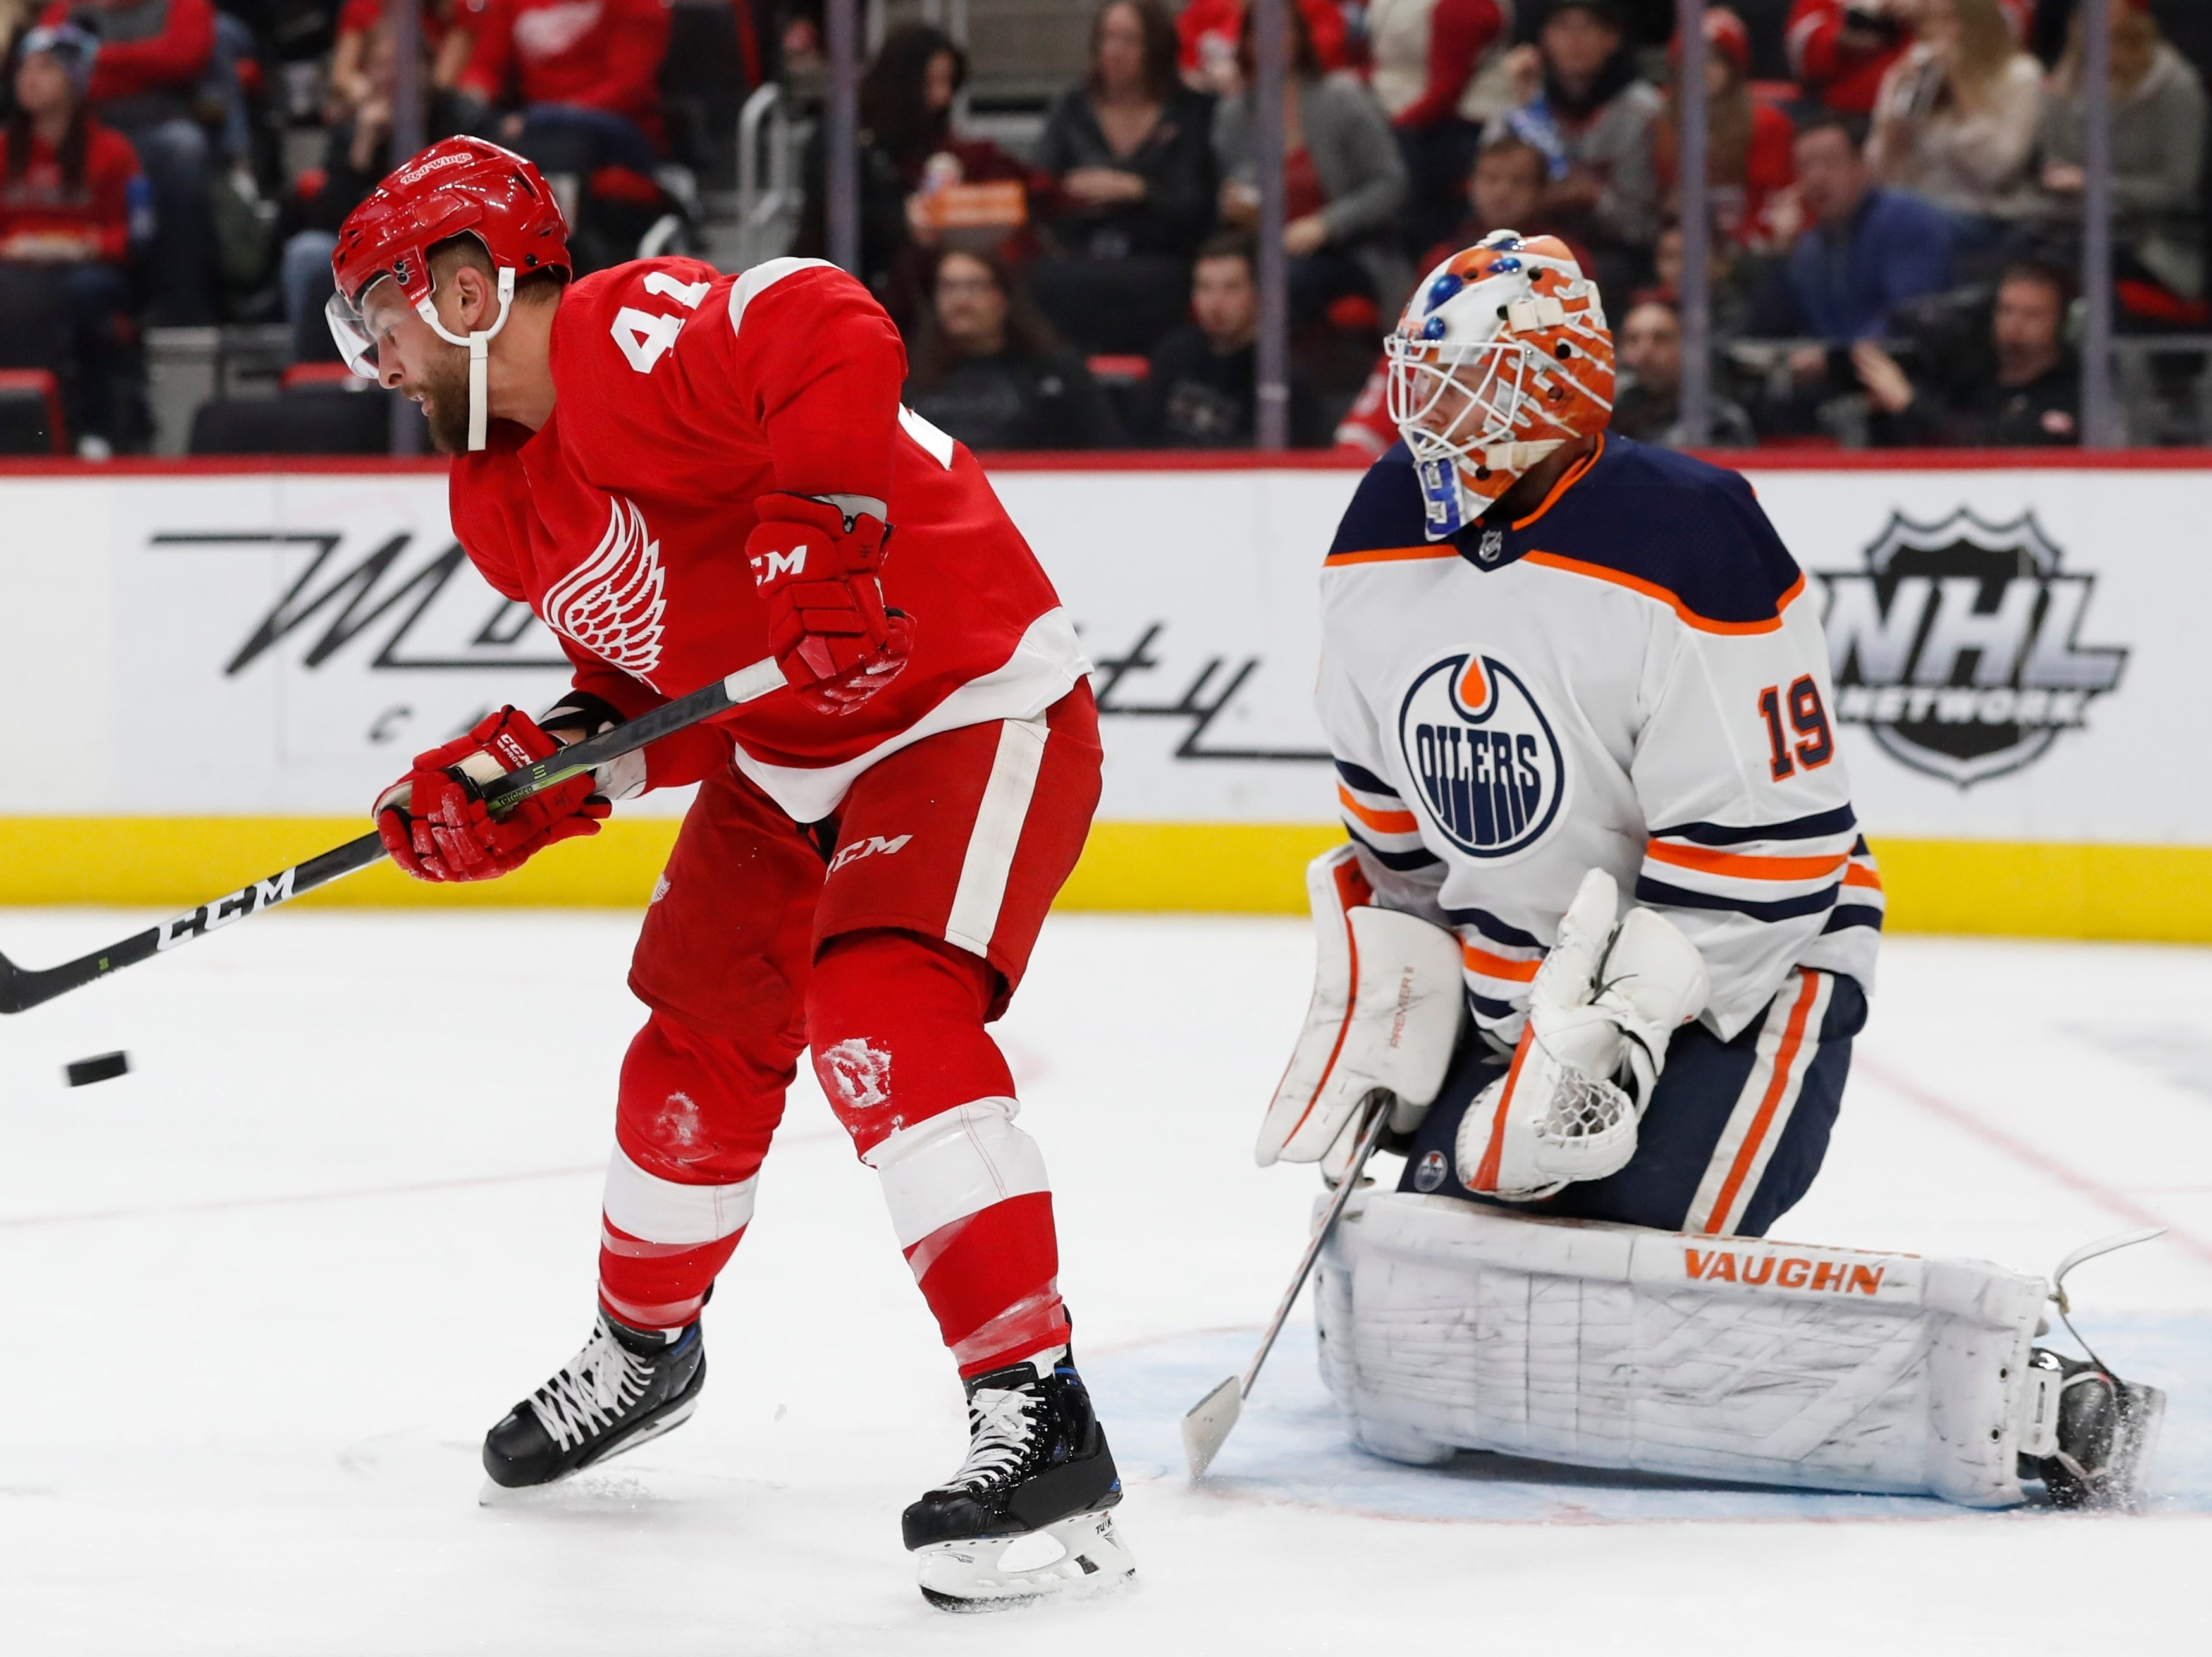 Detroit Red Wings center Luke Glendening (41) attempts diverting the puck past Edmonton Oilers goaltender Mikko Koskinen (19) during the second period of an NHL hockey game, Saturday, Nov. 3, 2018, in Detroit. (AP Photo/Carlos Osorio)